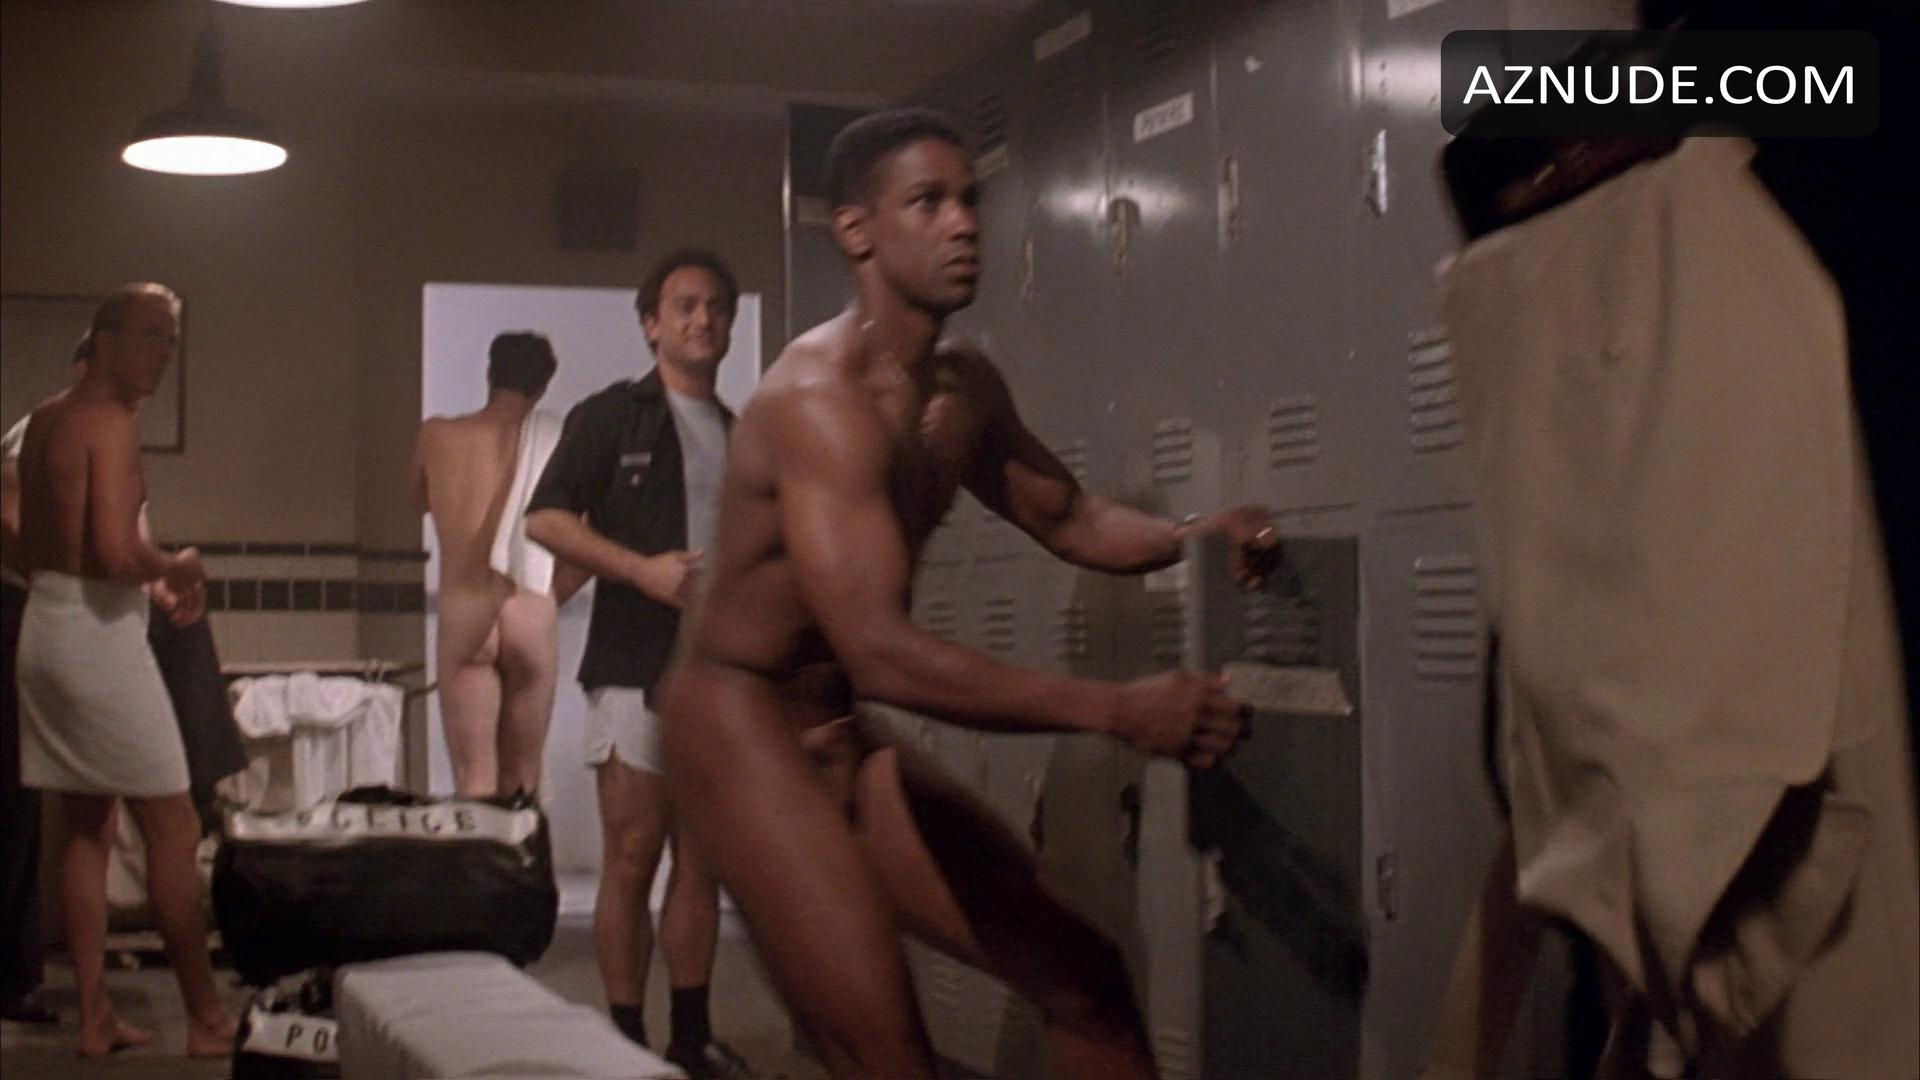 Does plan? denzel washington nude about one